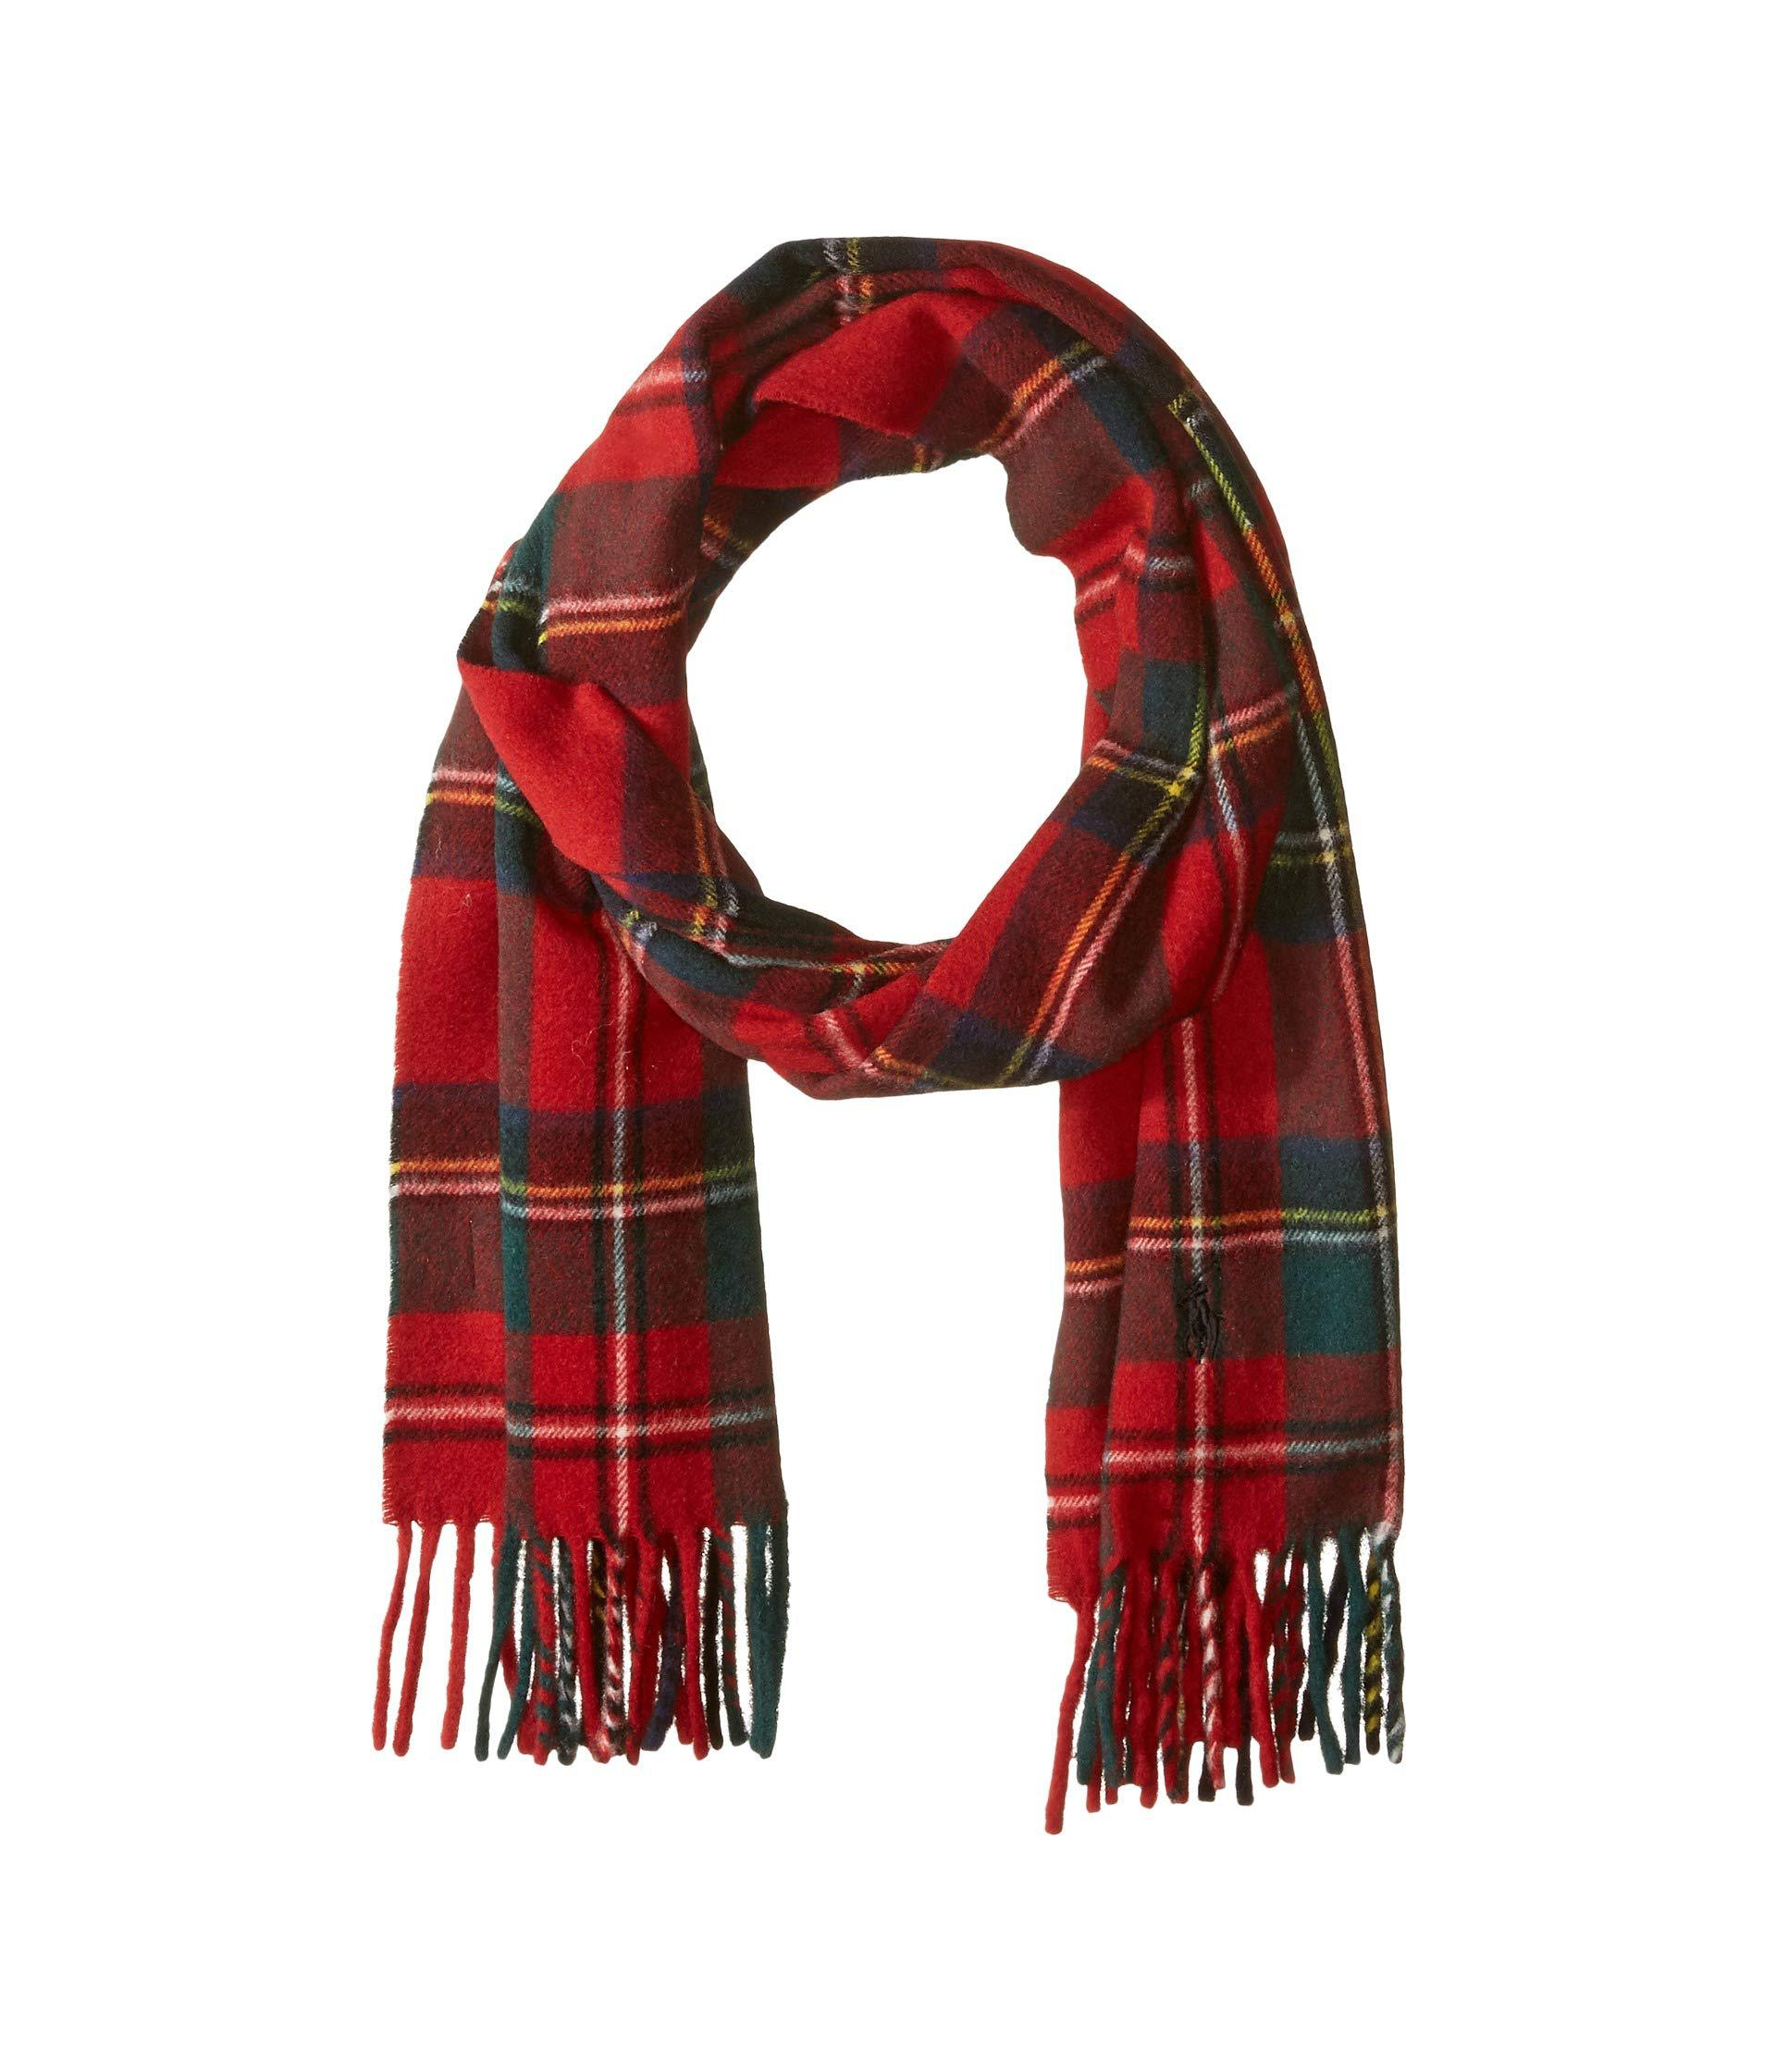 497912aedd720 Polo Ralph Lauren Classic Cashmere Tartan Scarf in Red for Men - Lyst